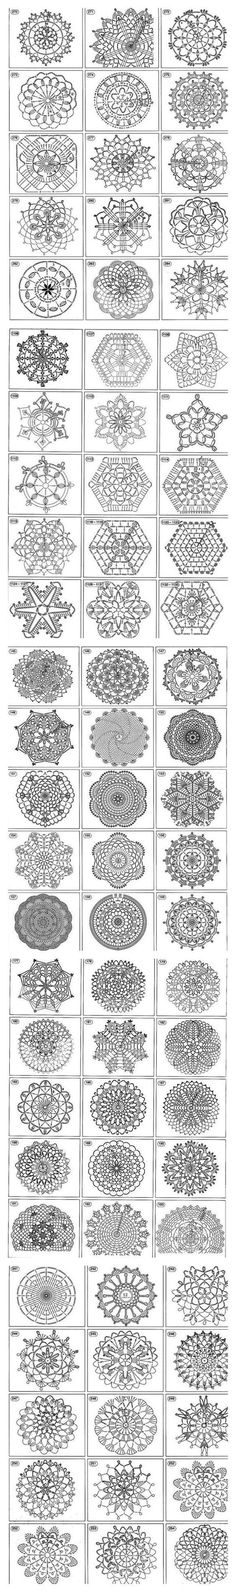 Over 1400 free crochet motif, afghan squares, coasters, snowflakes, doilies, triangles stitch chart diagram patterns. Great for baby blankets, afghans, table cl